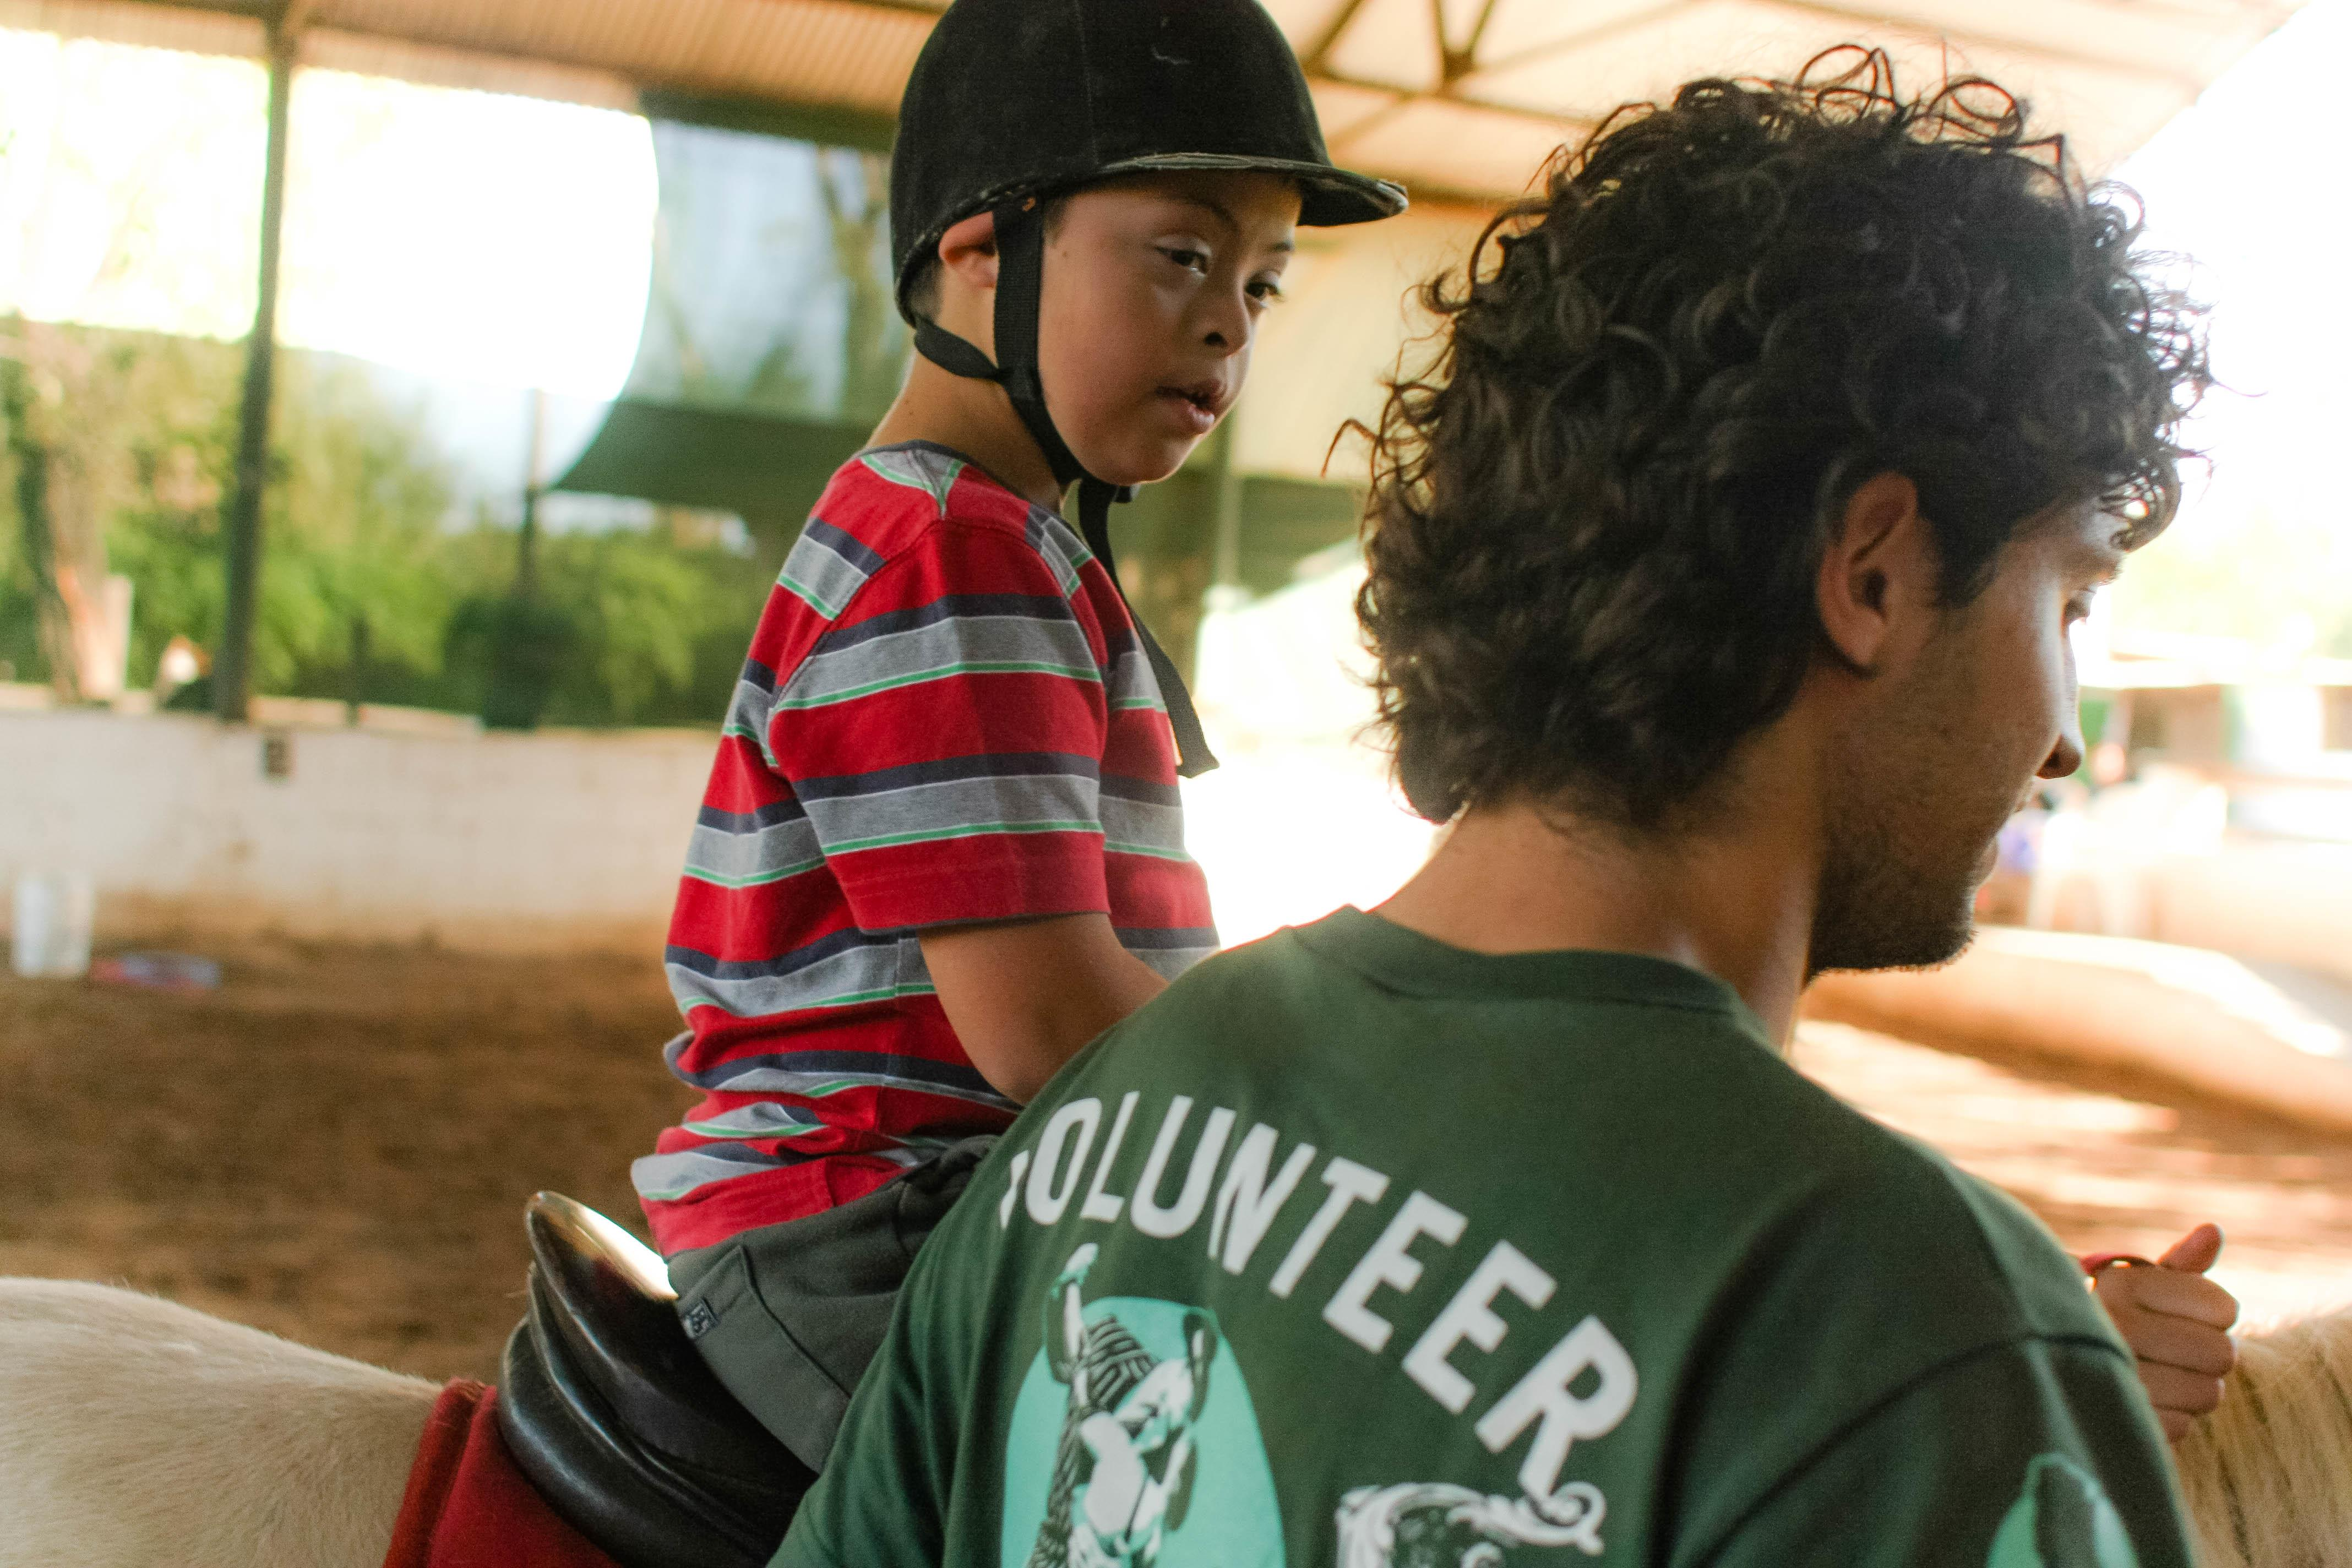 Male Equine Therapy intern working with children in Argentina leads a horse ridden by a child during a therapy session.